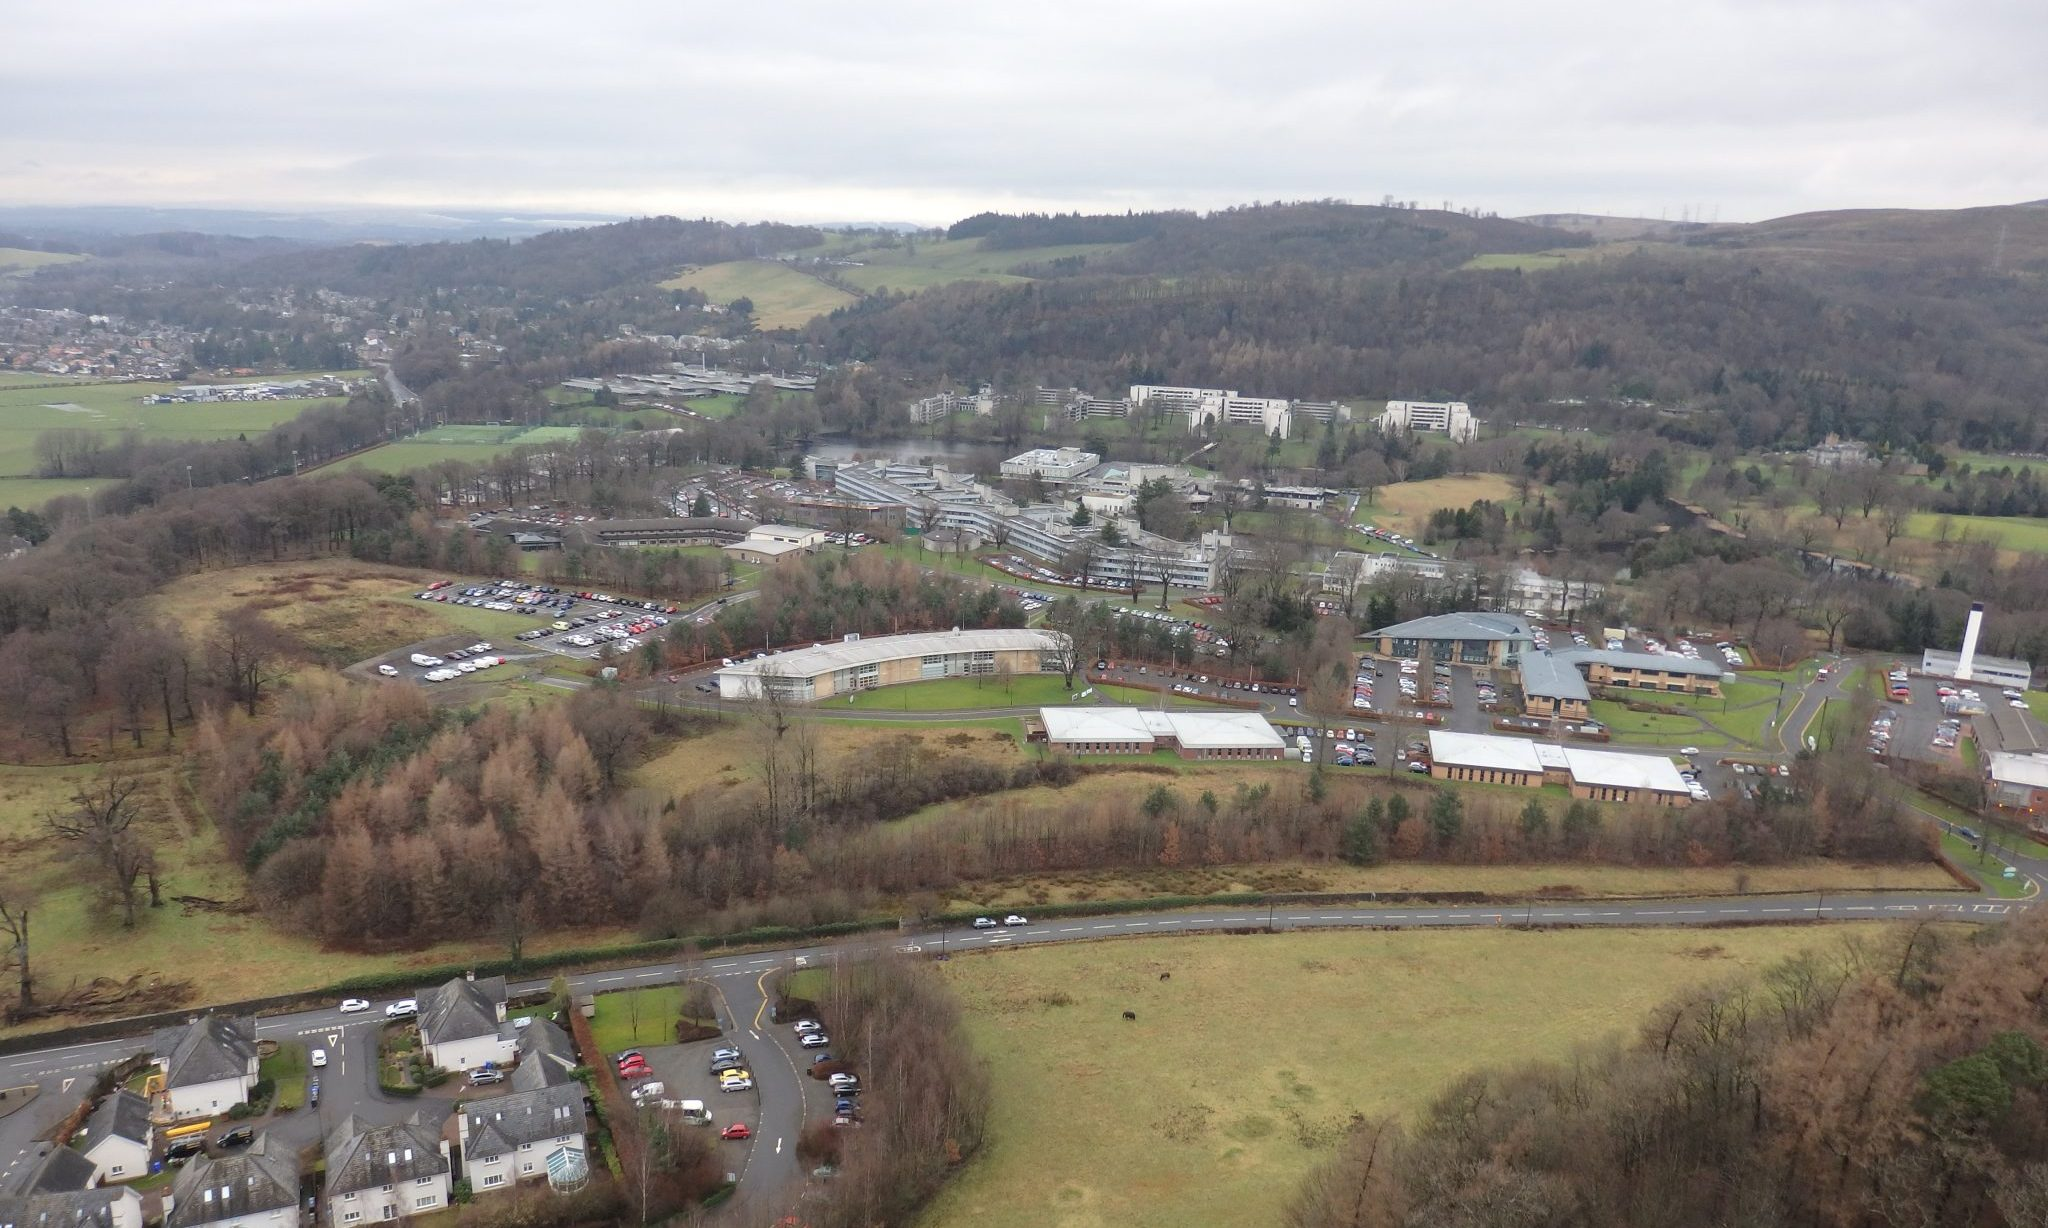 The Stirling University campus as seen from the Wallace memorial.